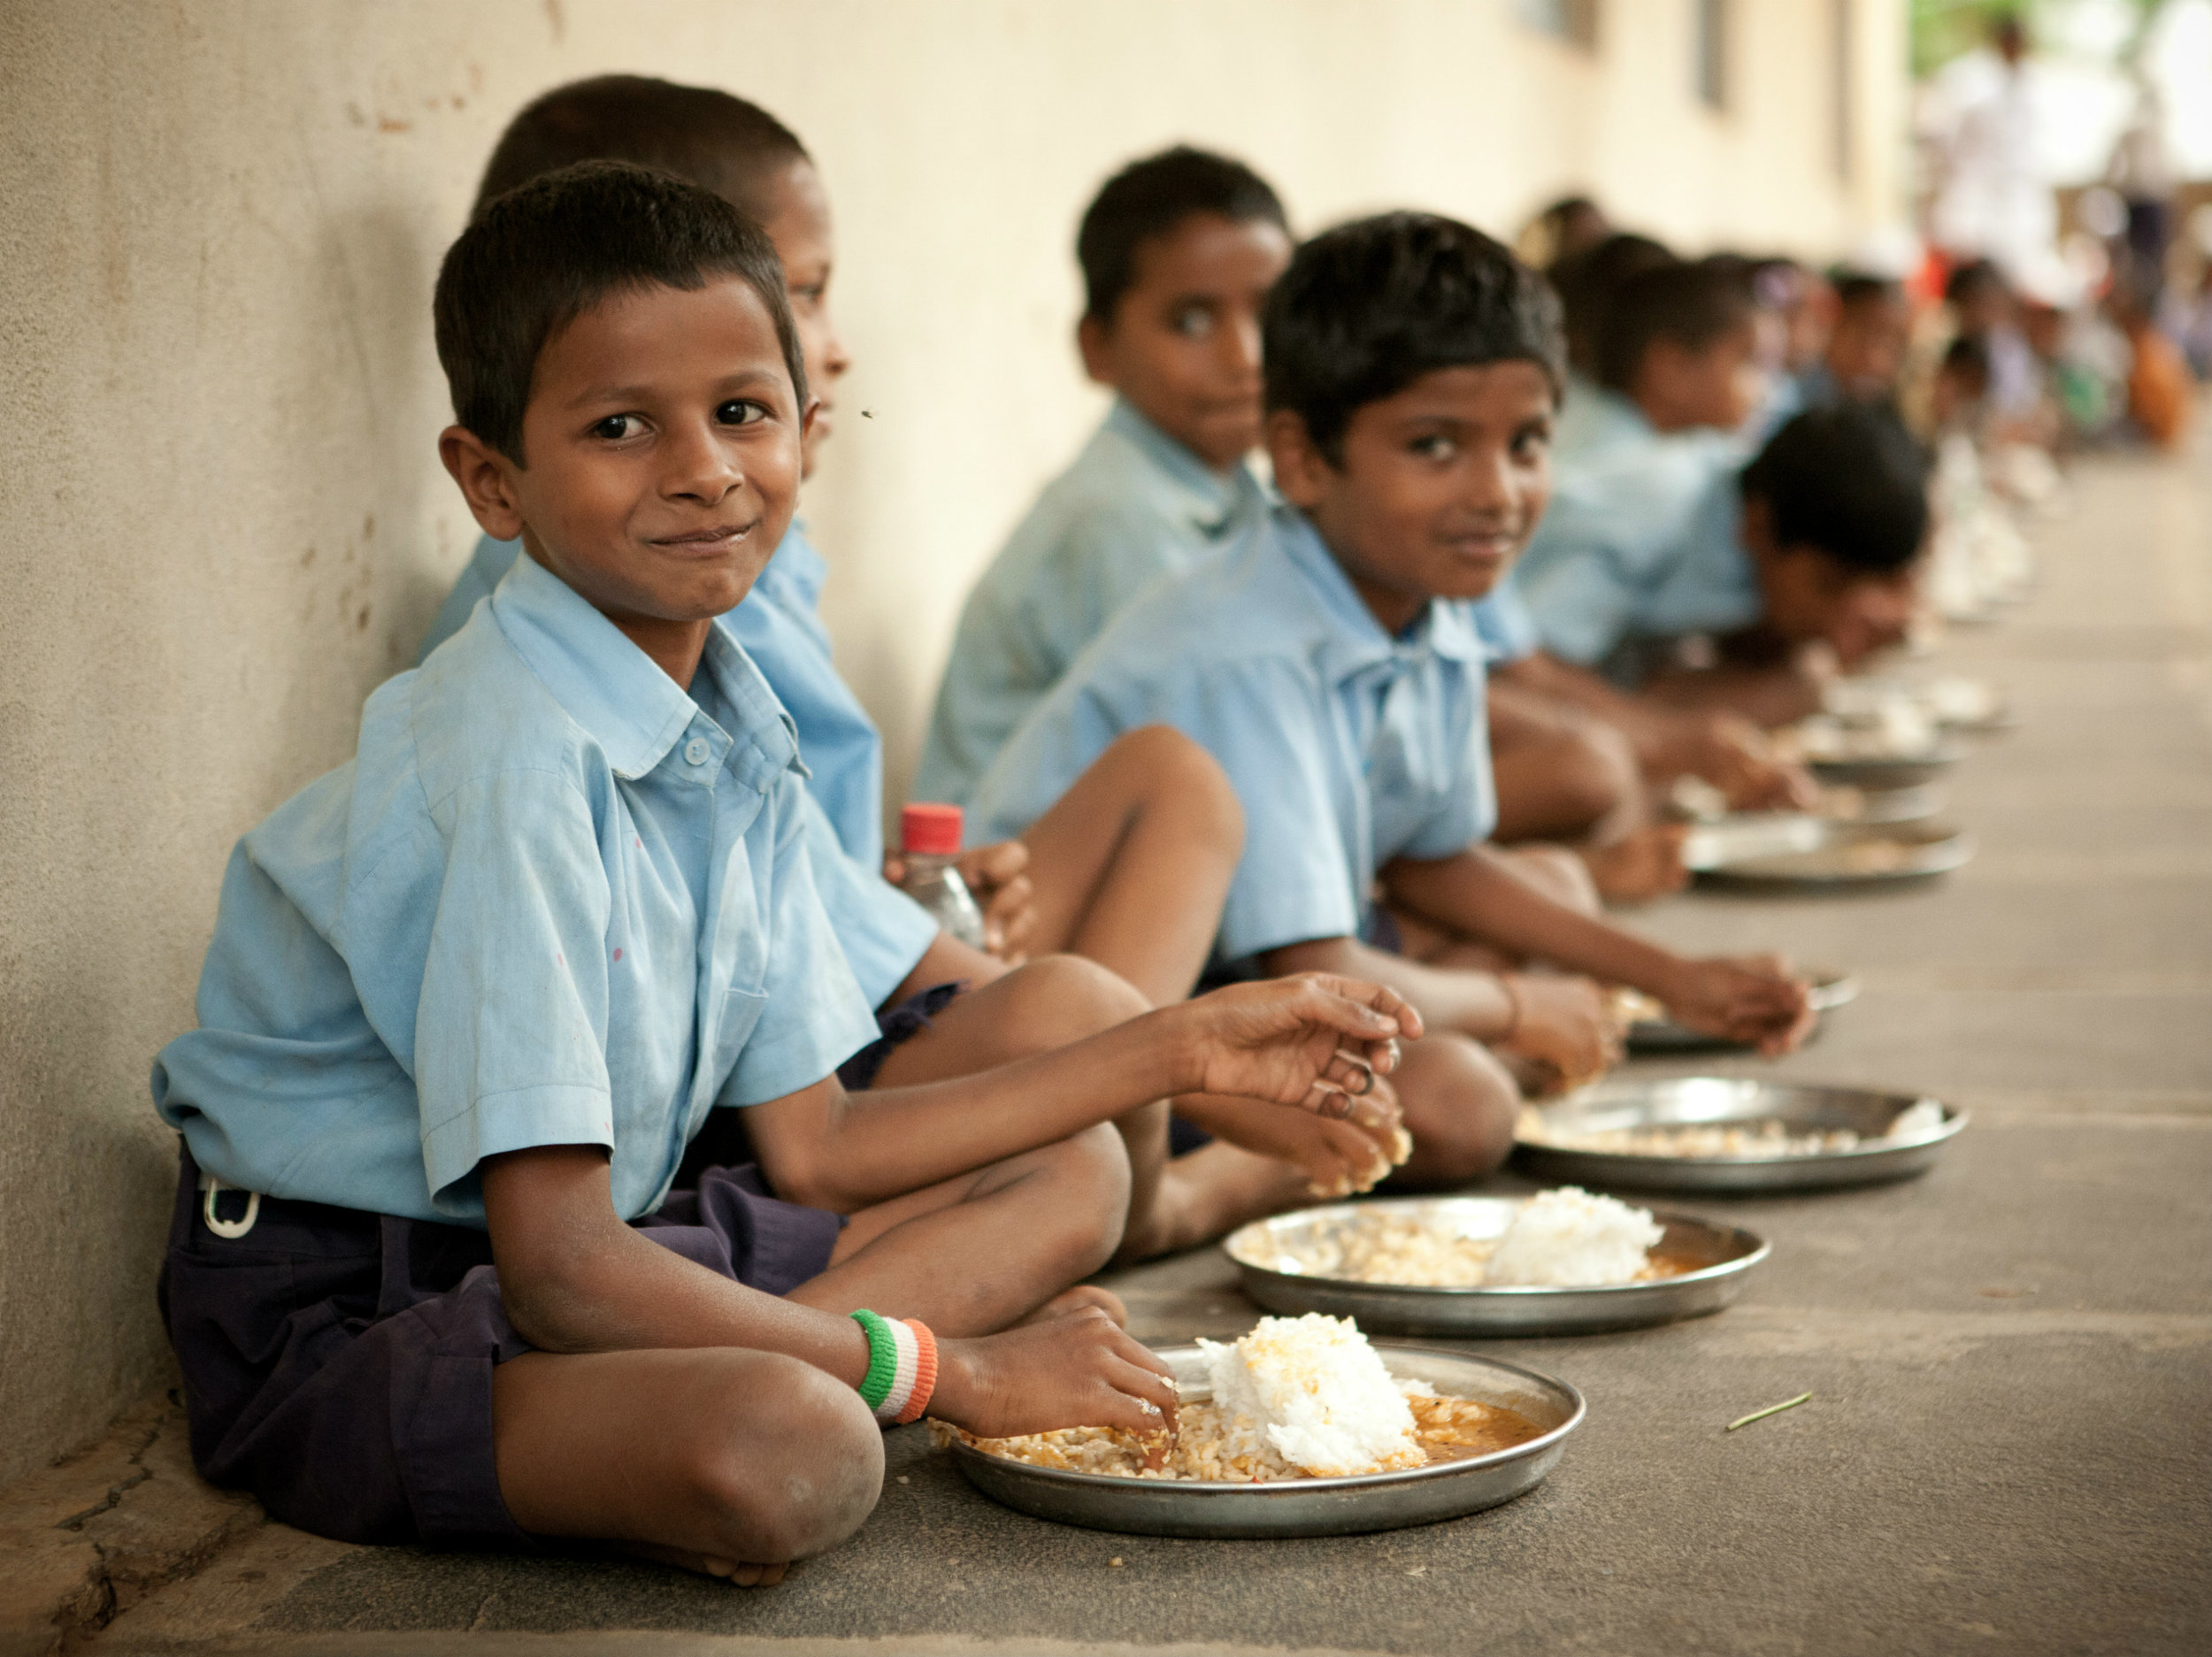 Classroom hunger affects children's ability to learn and grow. To solve this challenge, Akshaya Patra began the Food for Education initiative which is continuously making an effort to feed children from over 13,000 schools in India.